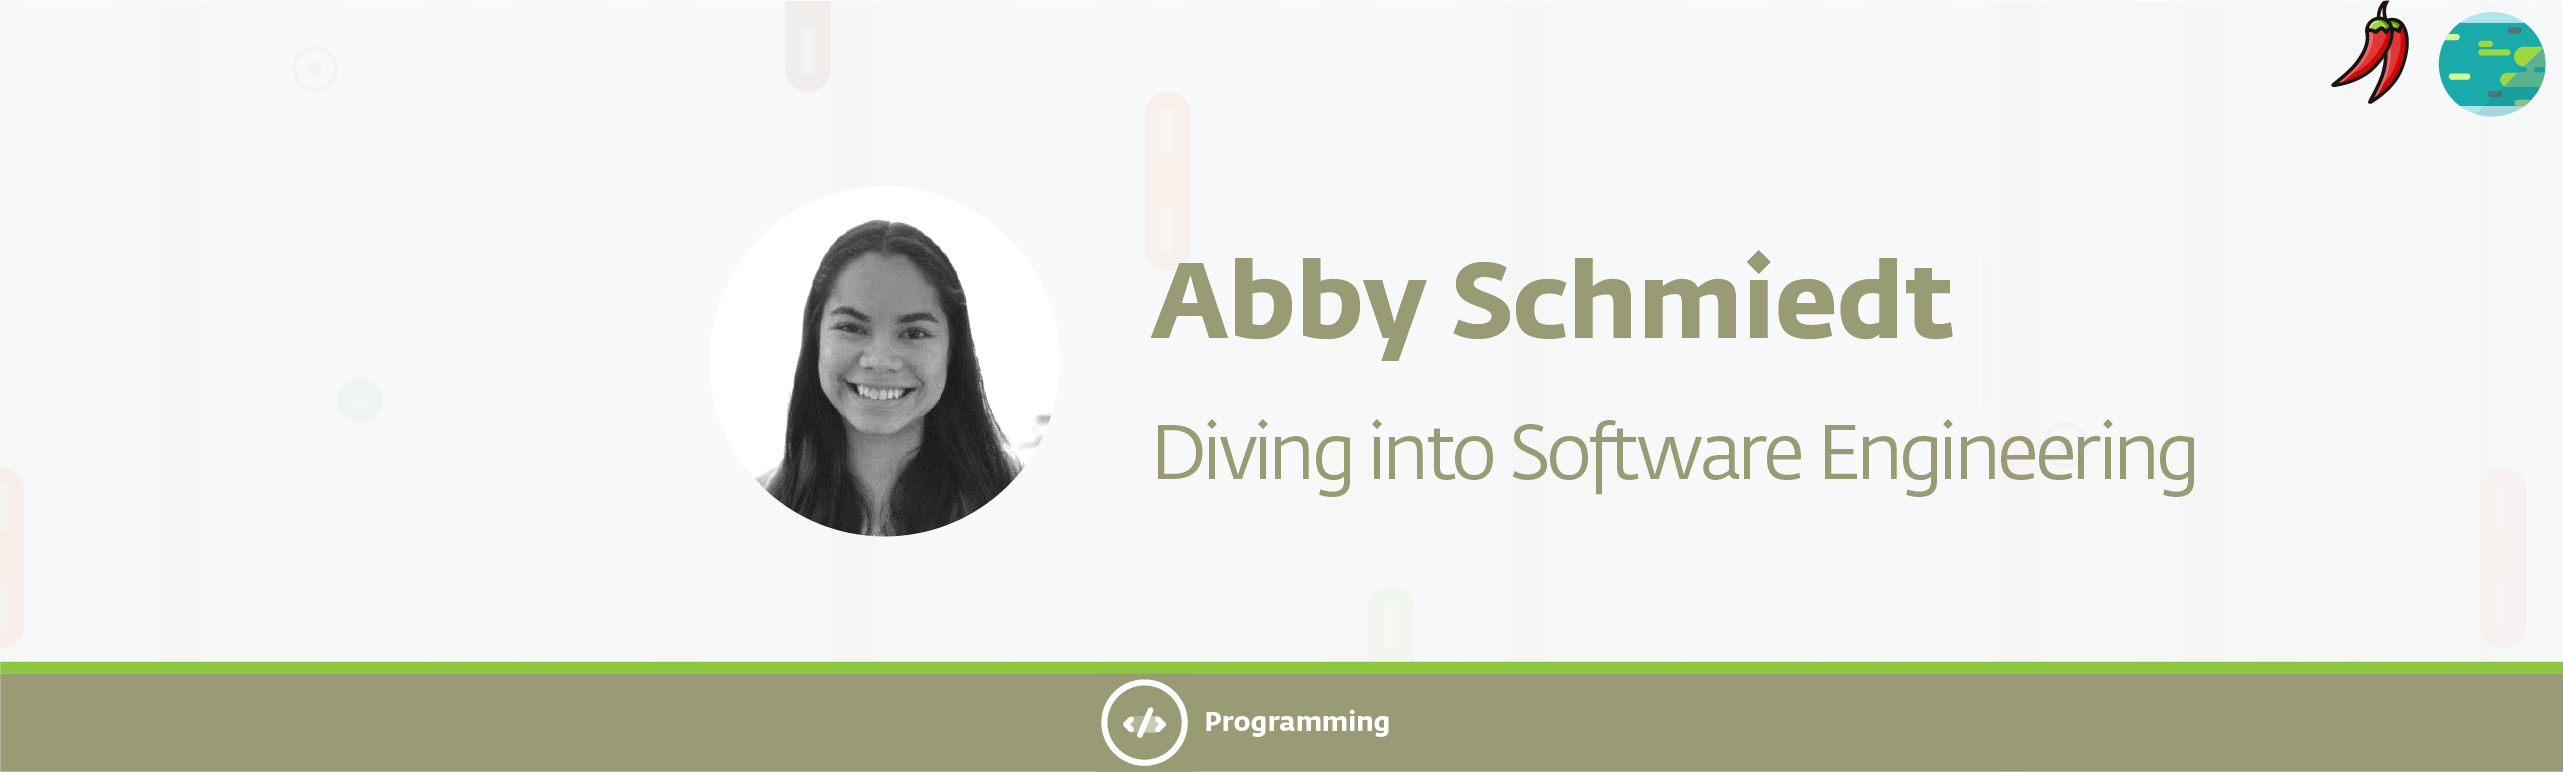 nor laber banner 13 - Diving into Software Engineering